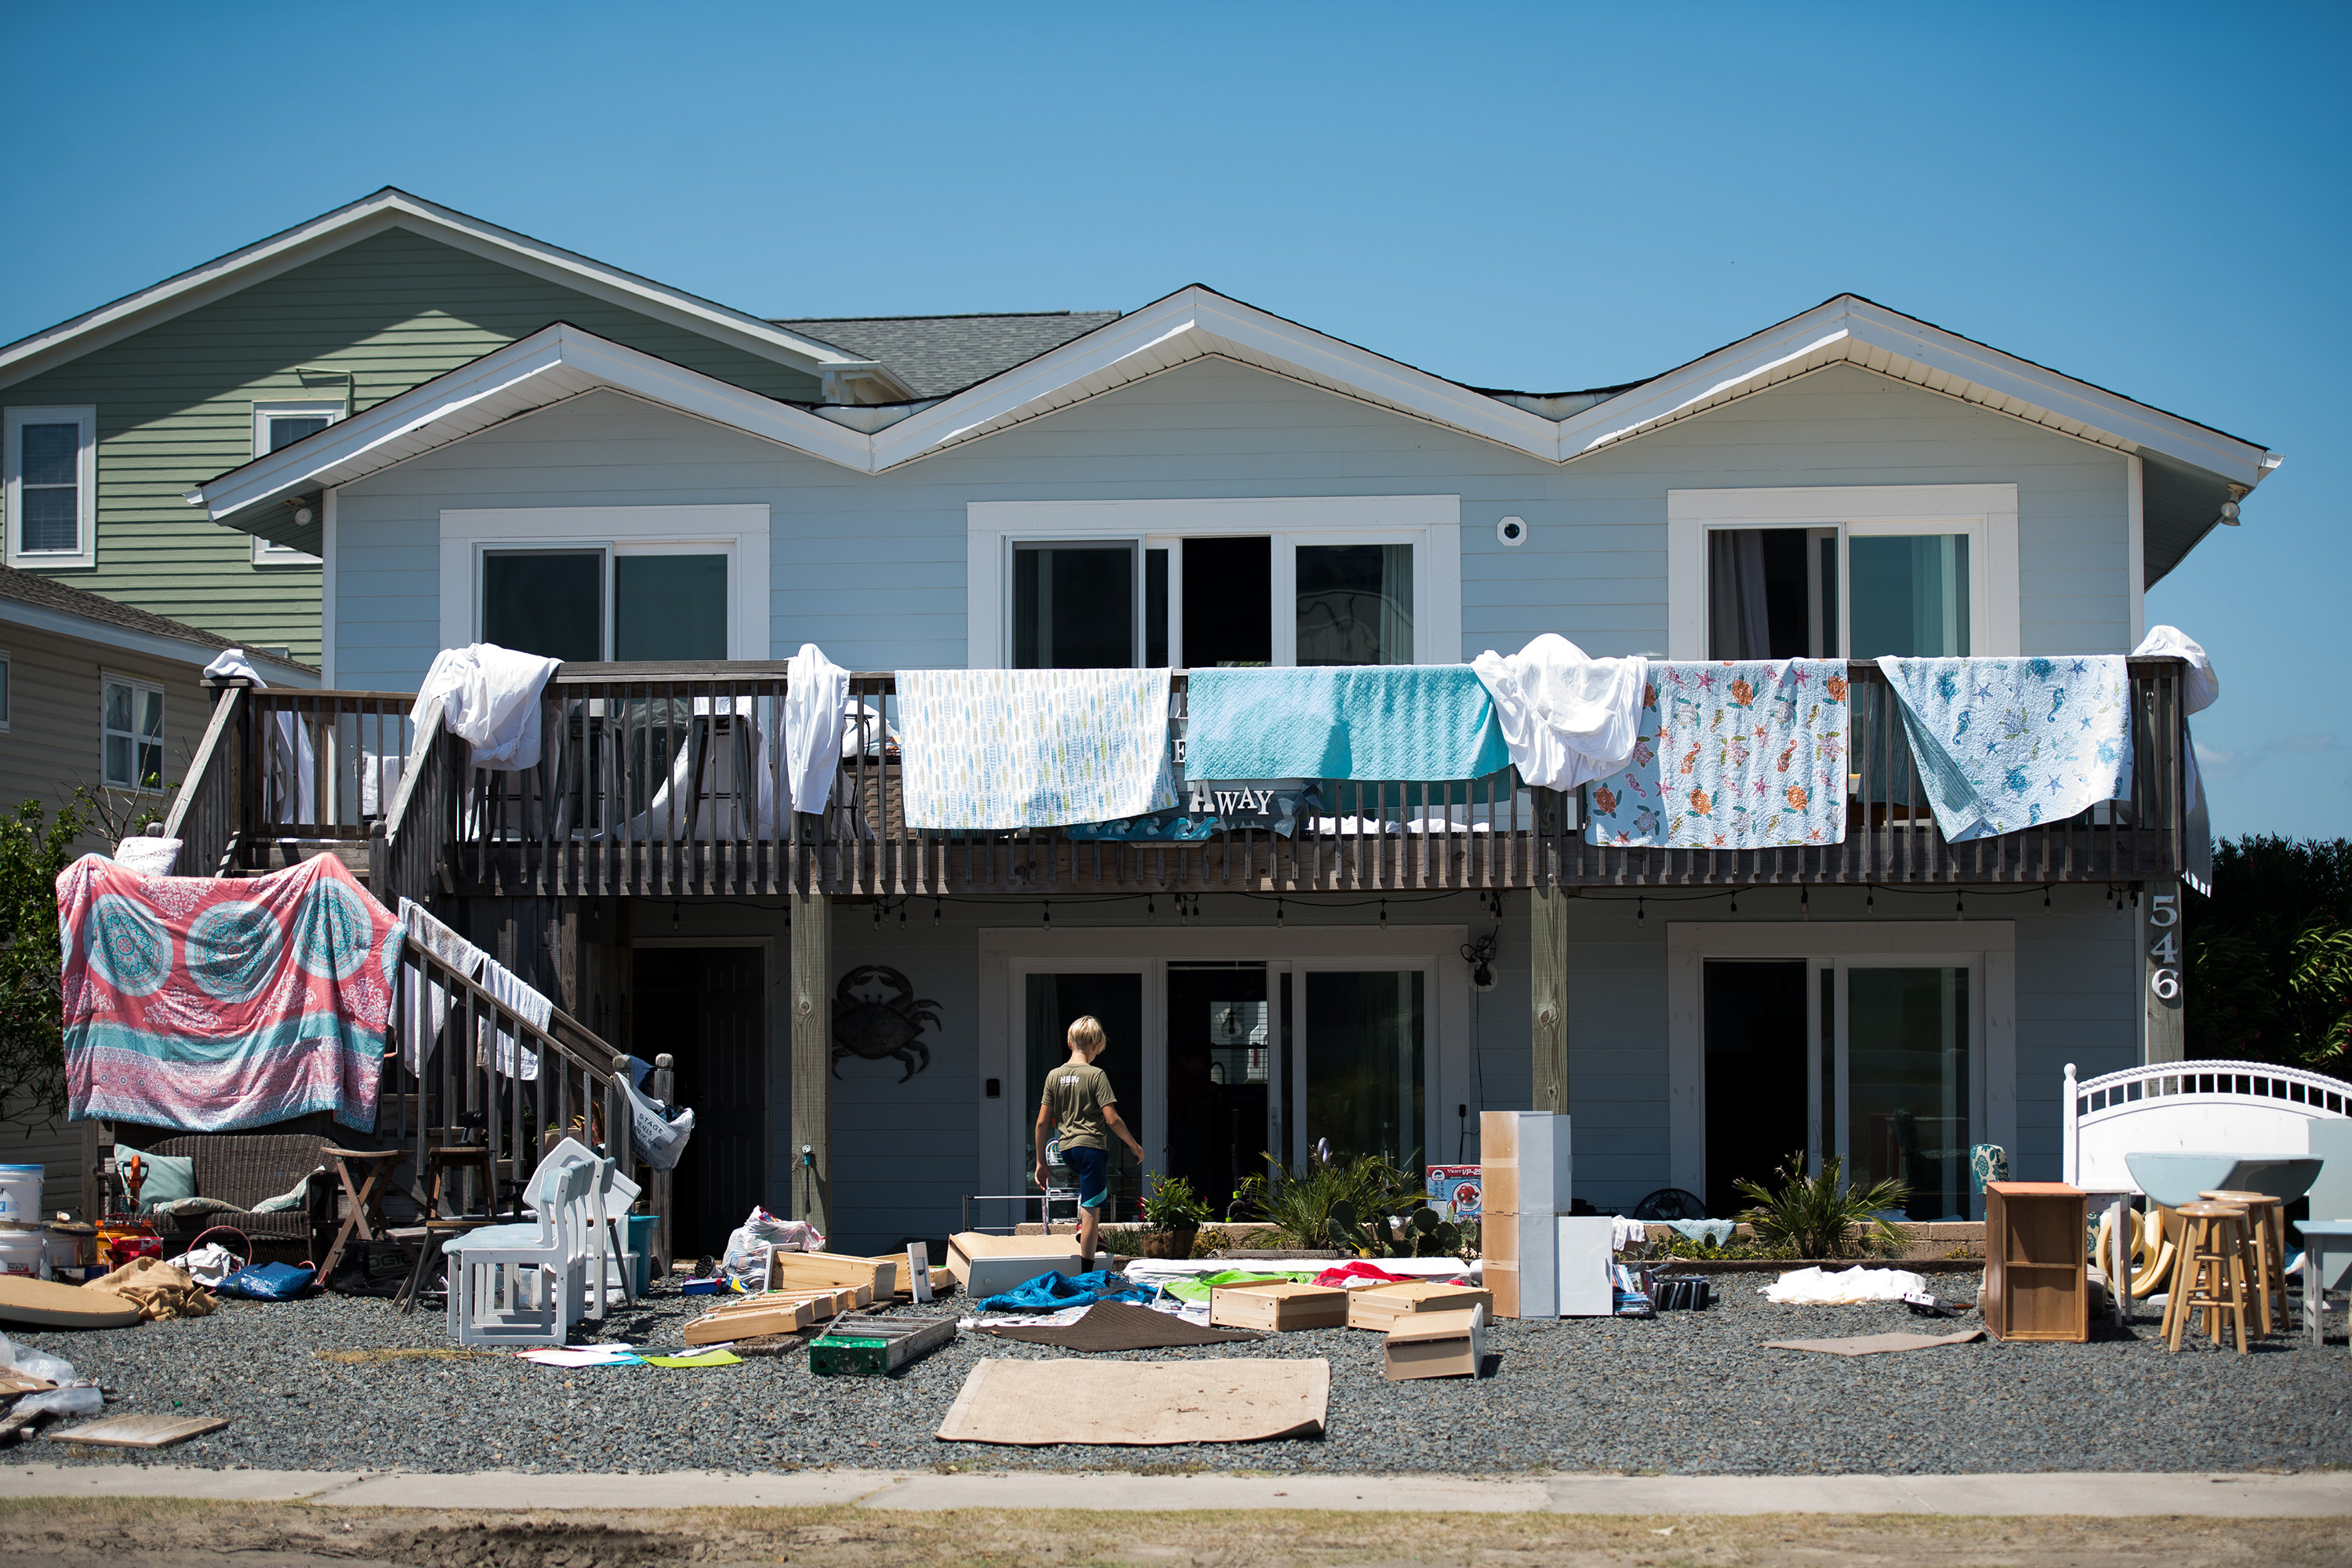 Bedsheets are draped over a second-story railing of a house surrounded by furniture moved outside to dry